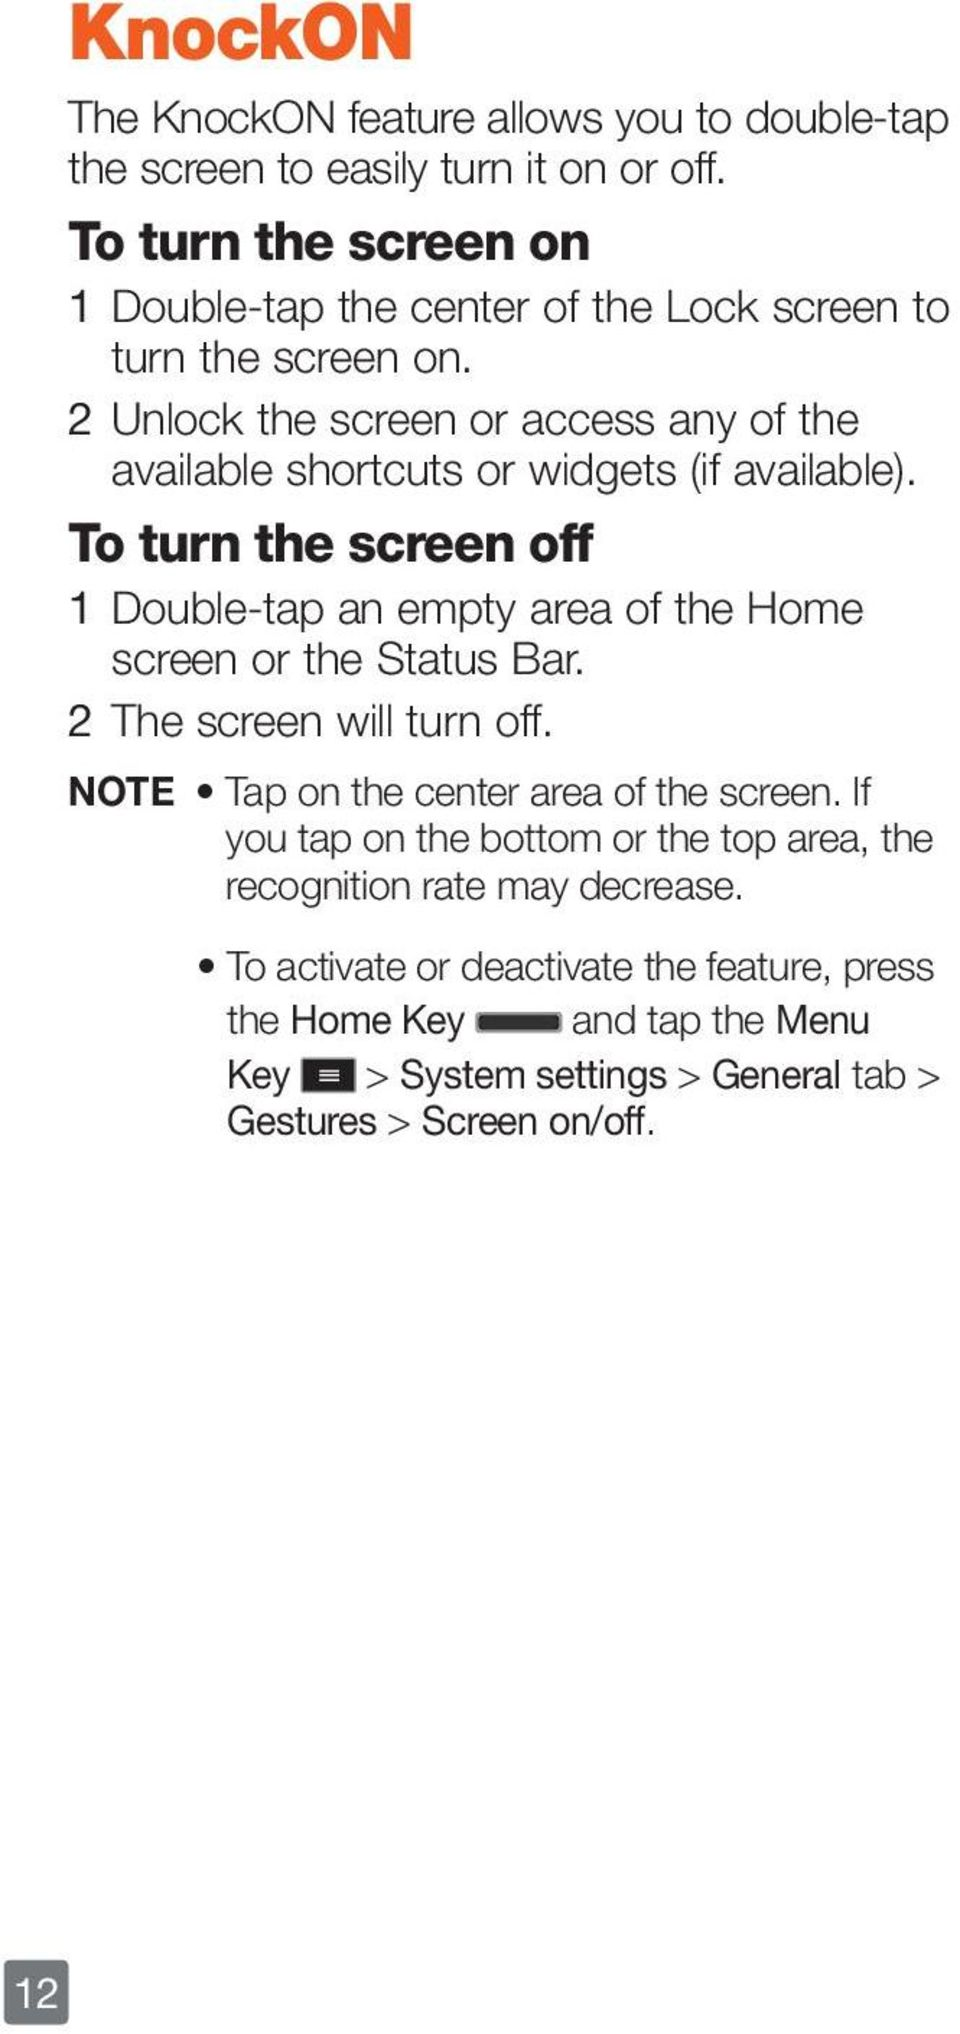 2 Unlock the screen or access any of the available shortcuts or widgets (if available).